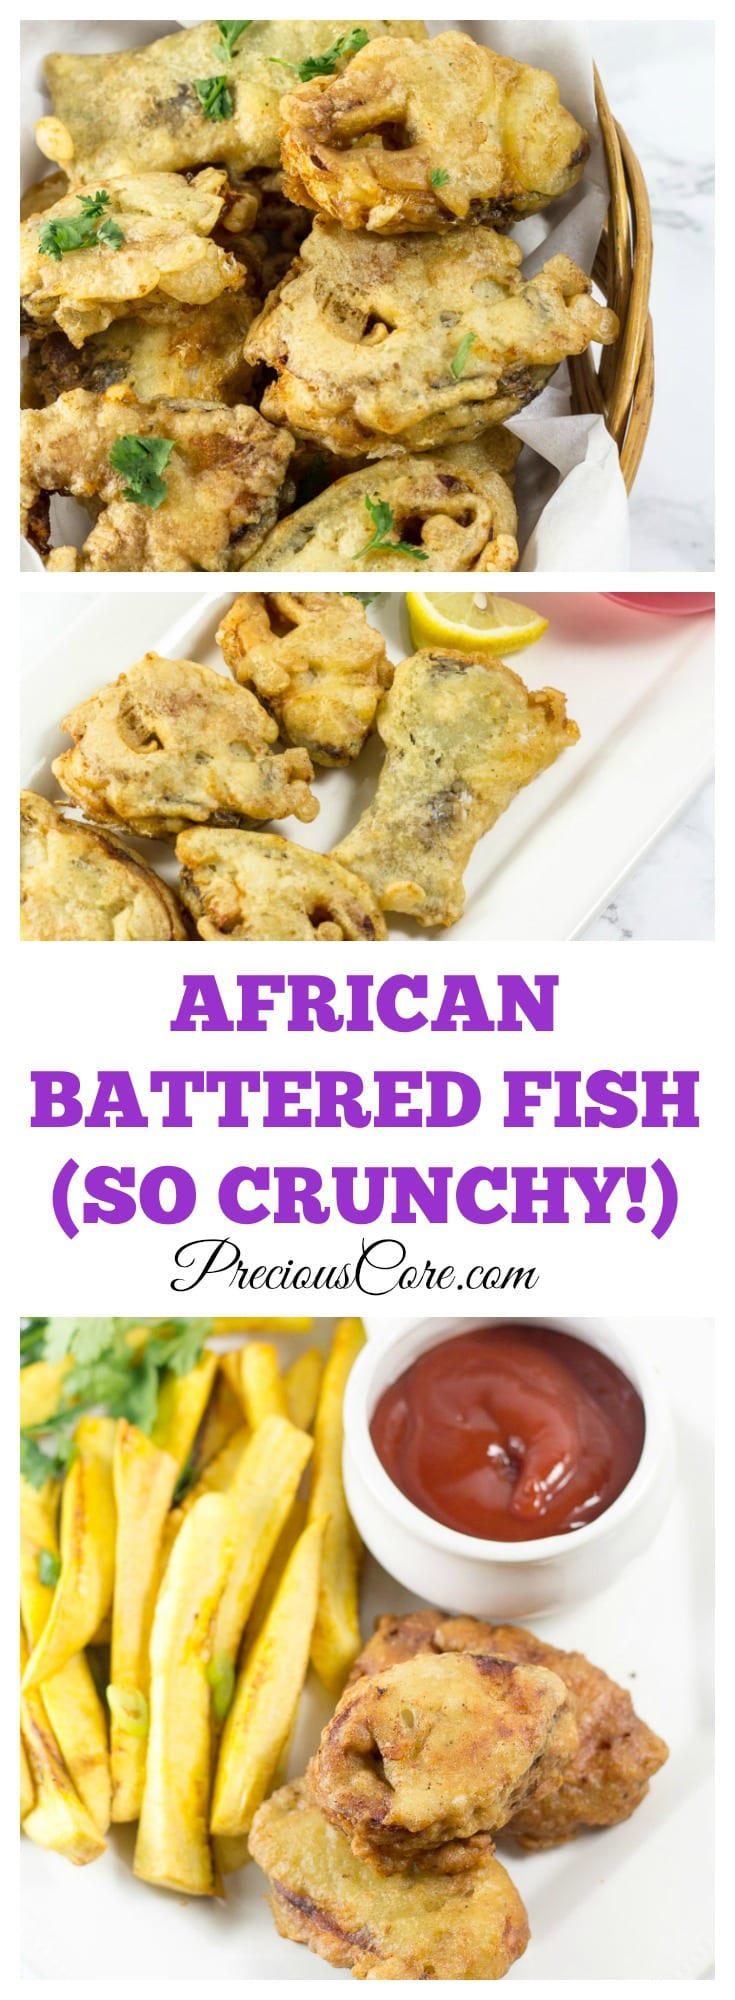 battered fish recipe